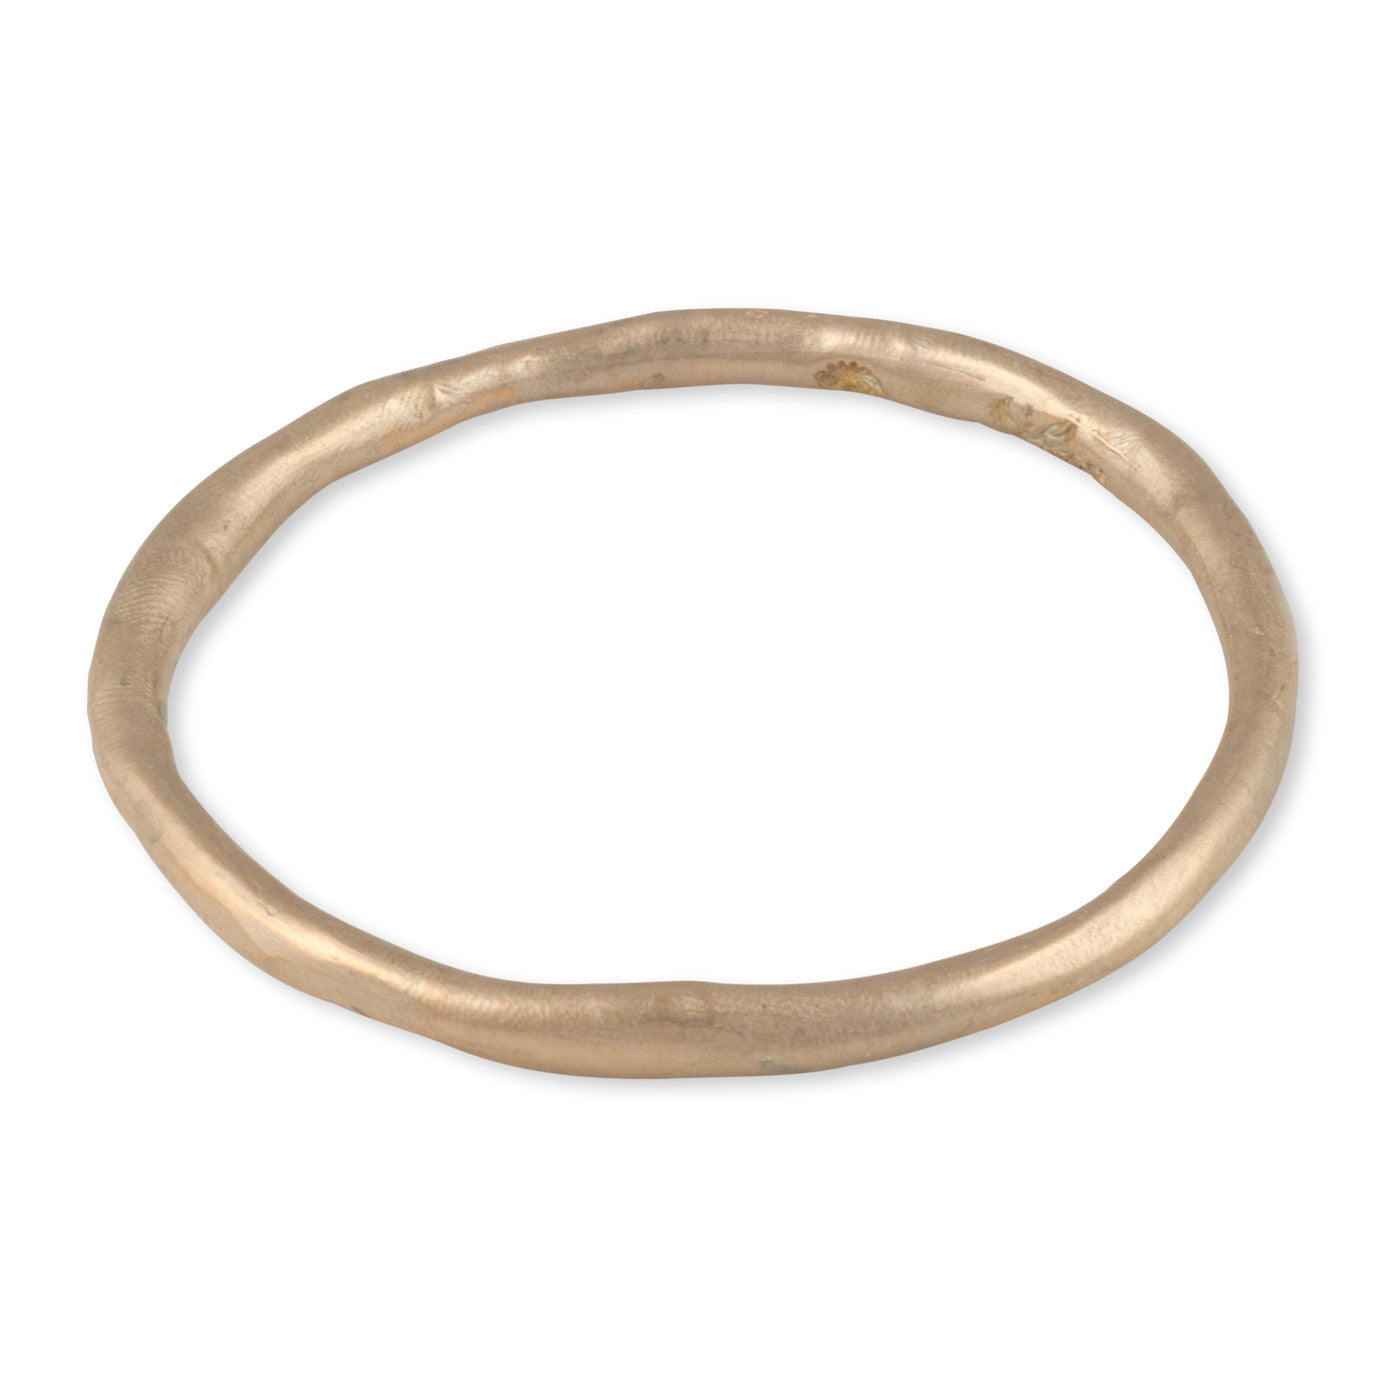 bangle compass jewellery woodland bronze product bangles carlamundy campfire shop campcomp